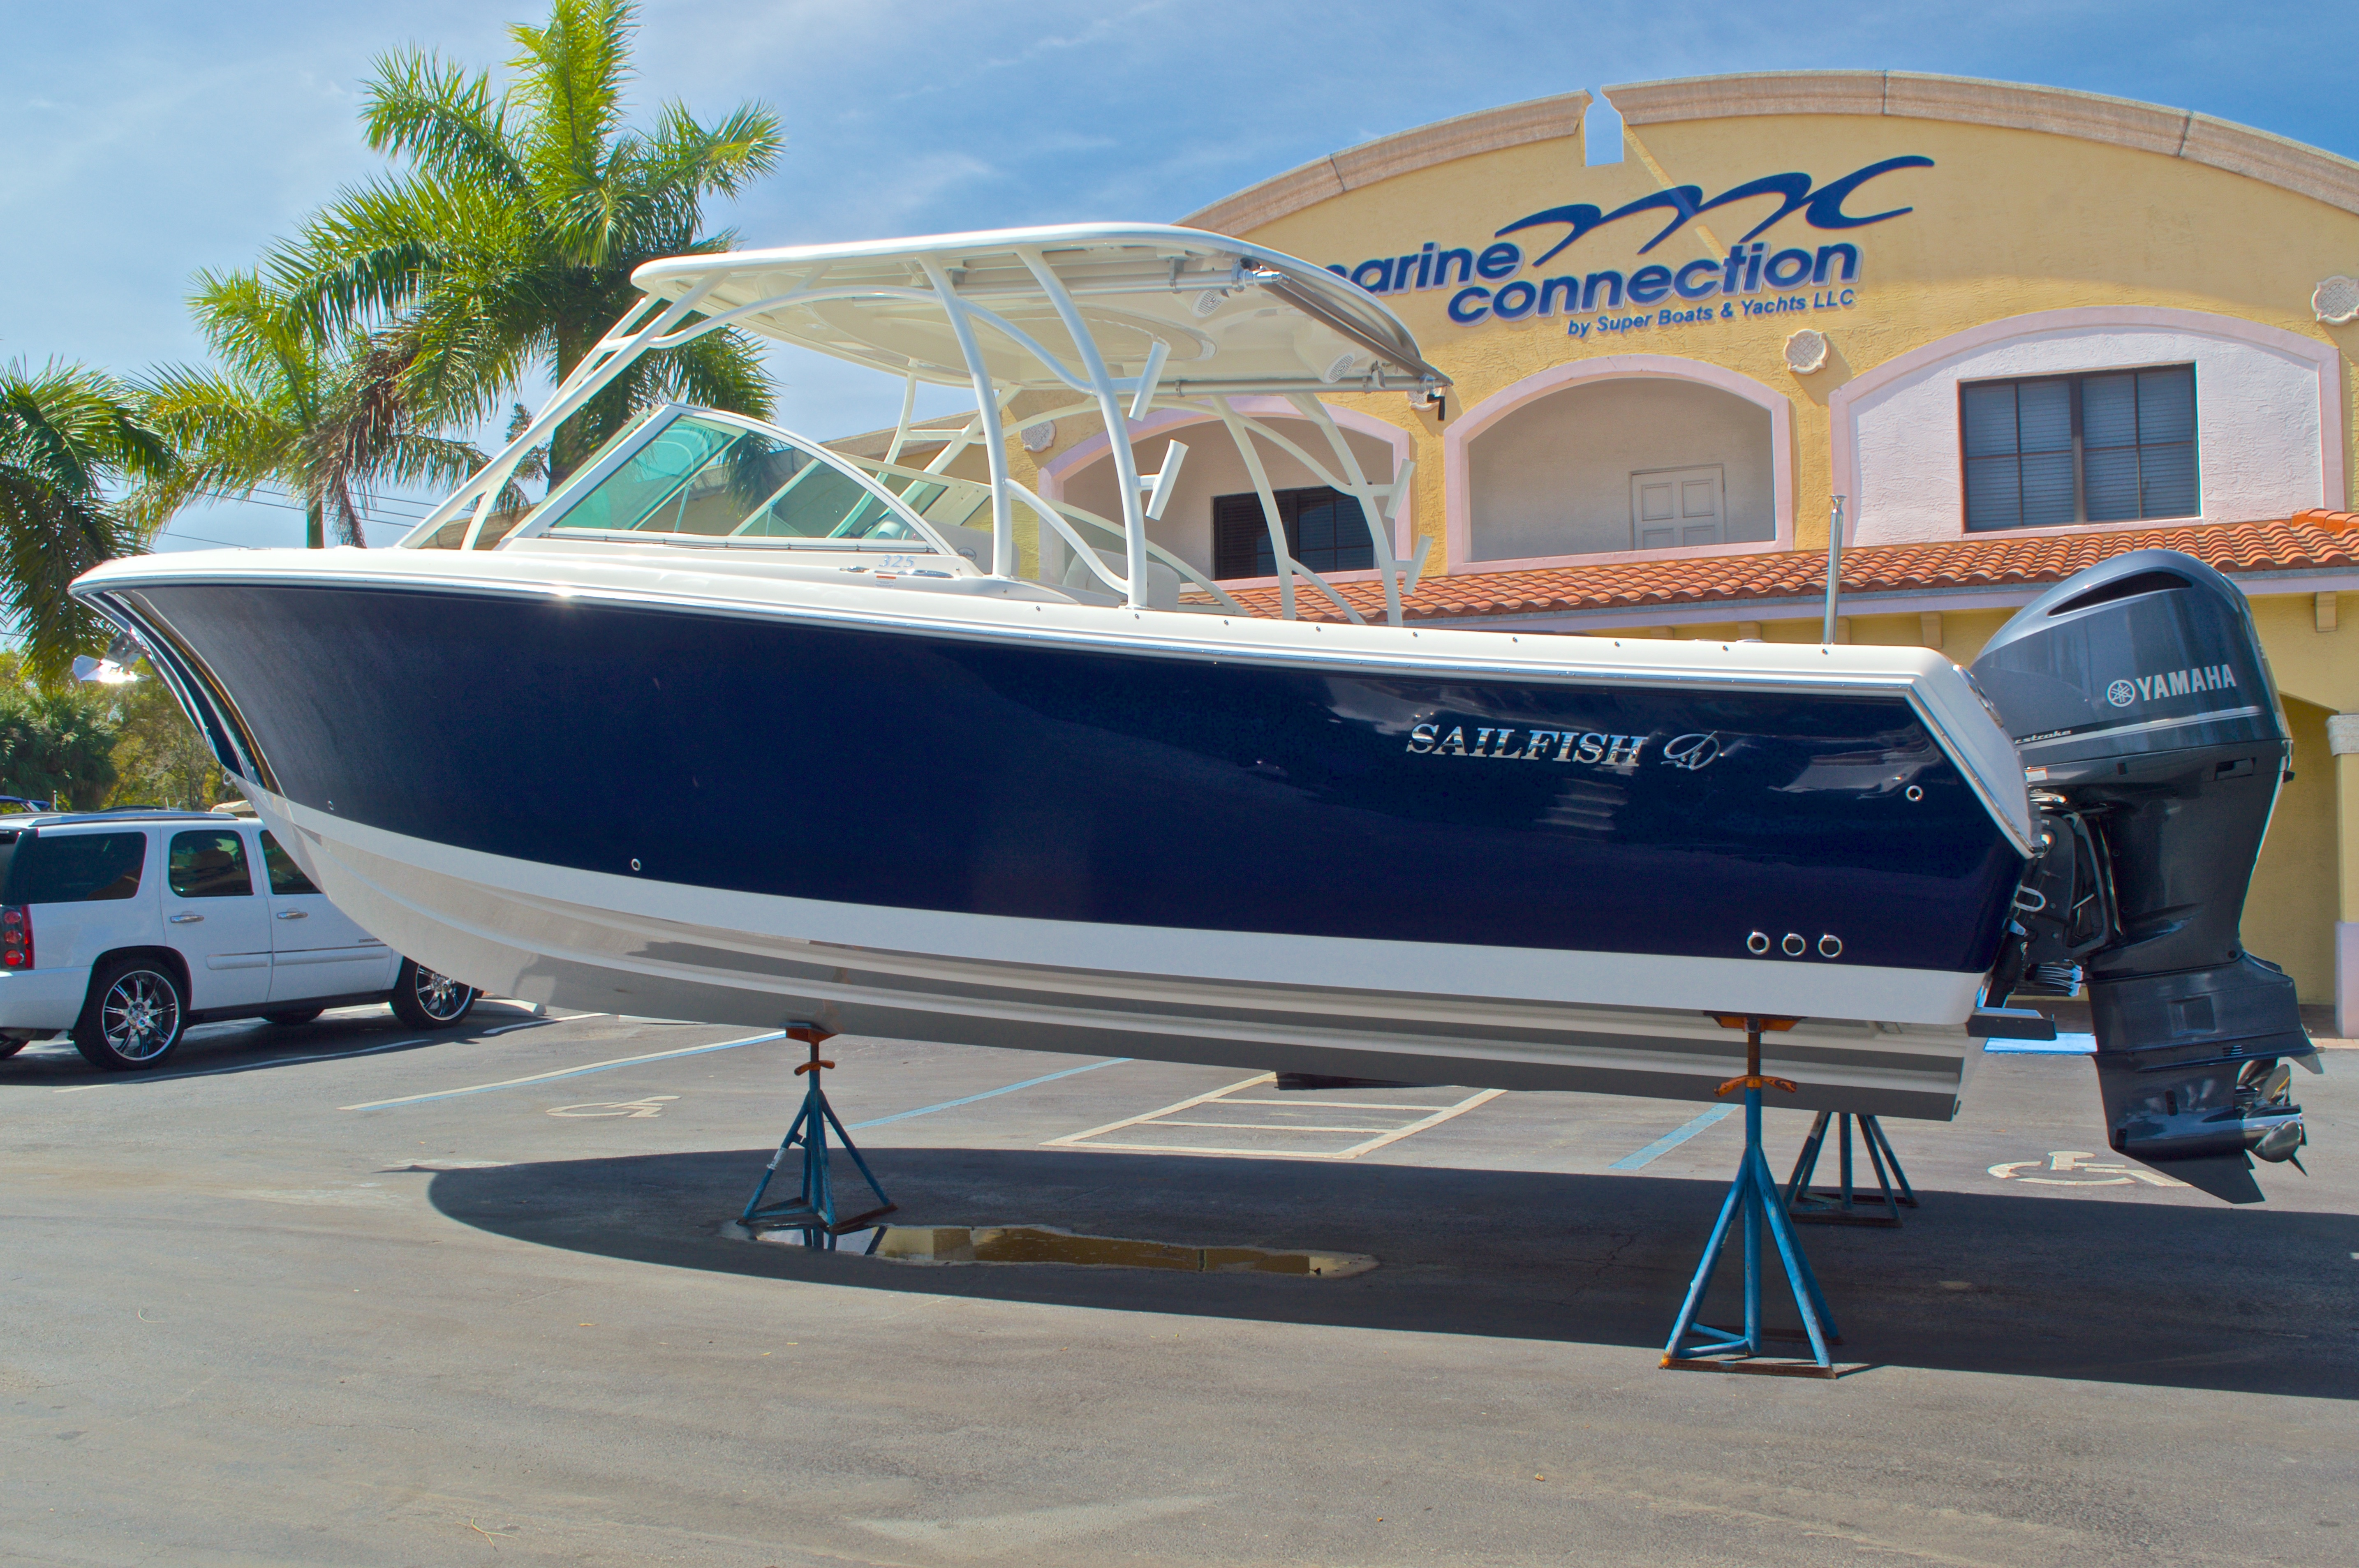 Thumbnail 1 for New 2016 Sailfish 325 Dual Console boat for sale in West Palm Beach, FL